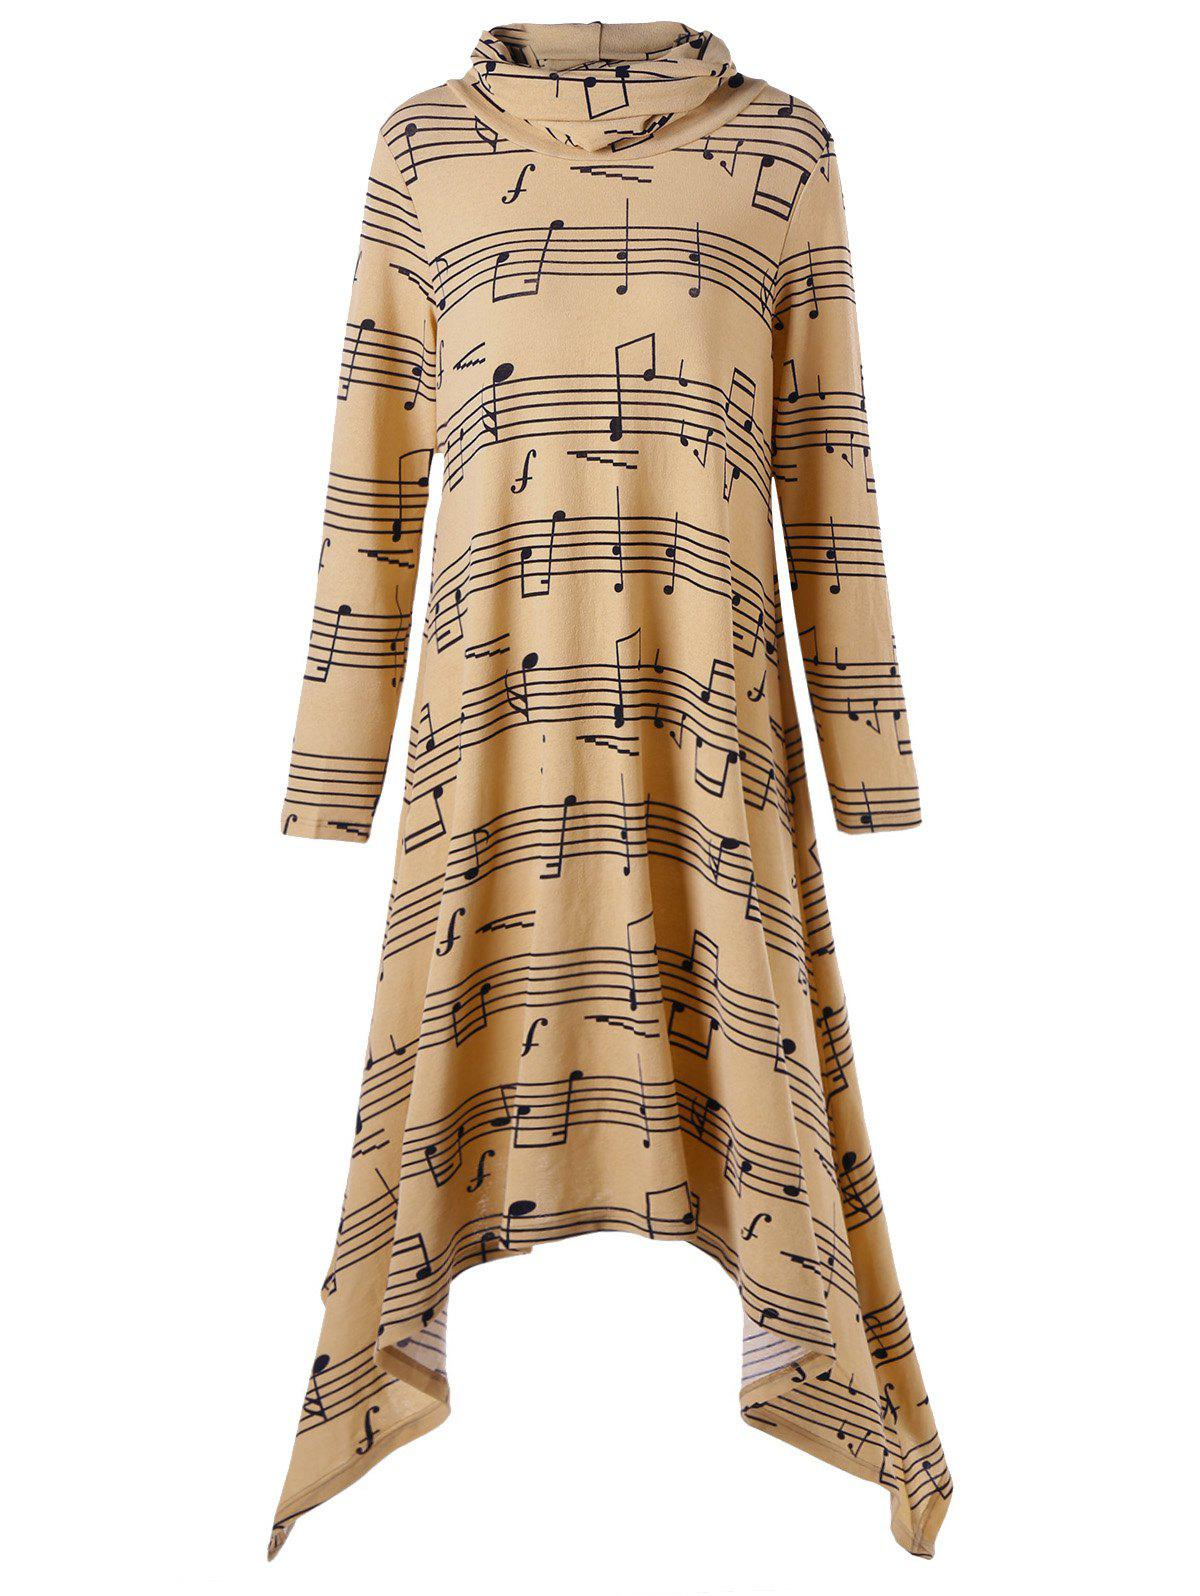 Turtle Neck Music Note Print Handkerchief Dress music note party swing dress